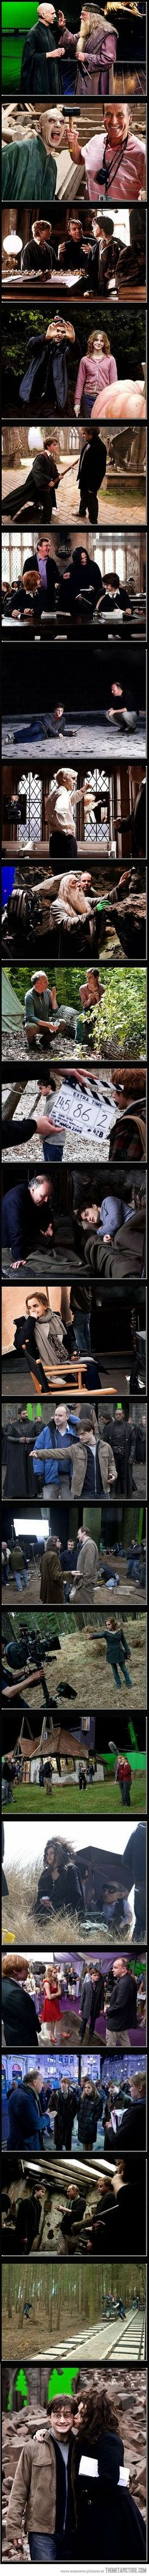 Shots from the set of Harry Potter